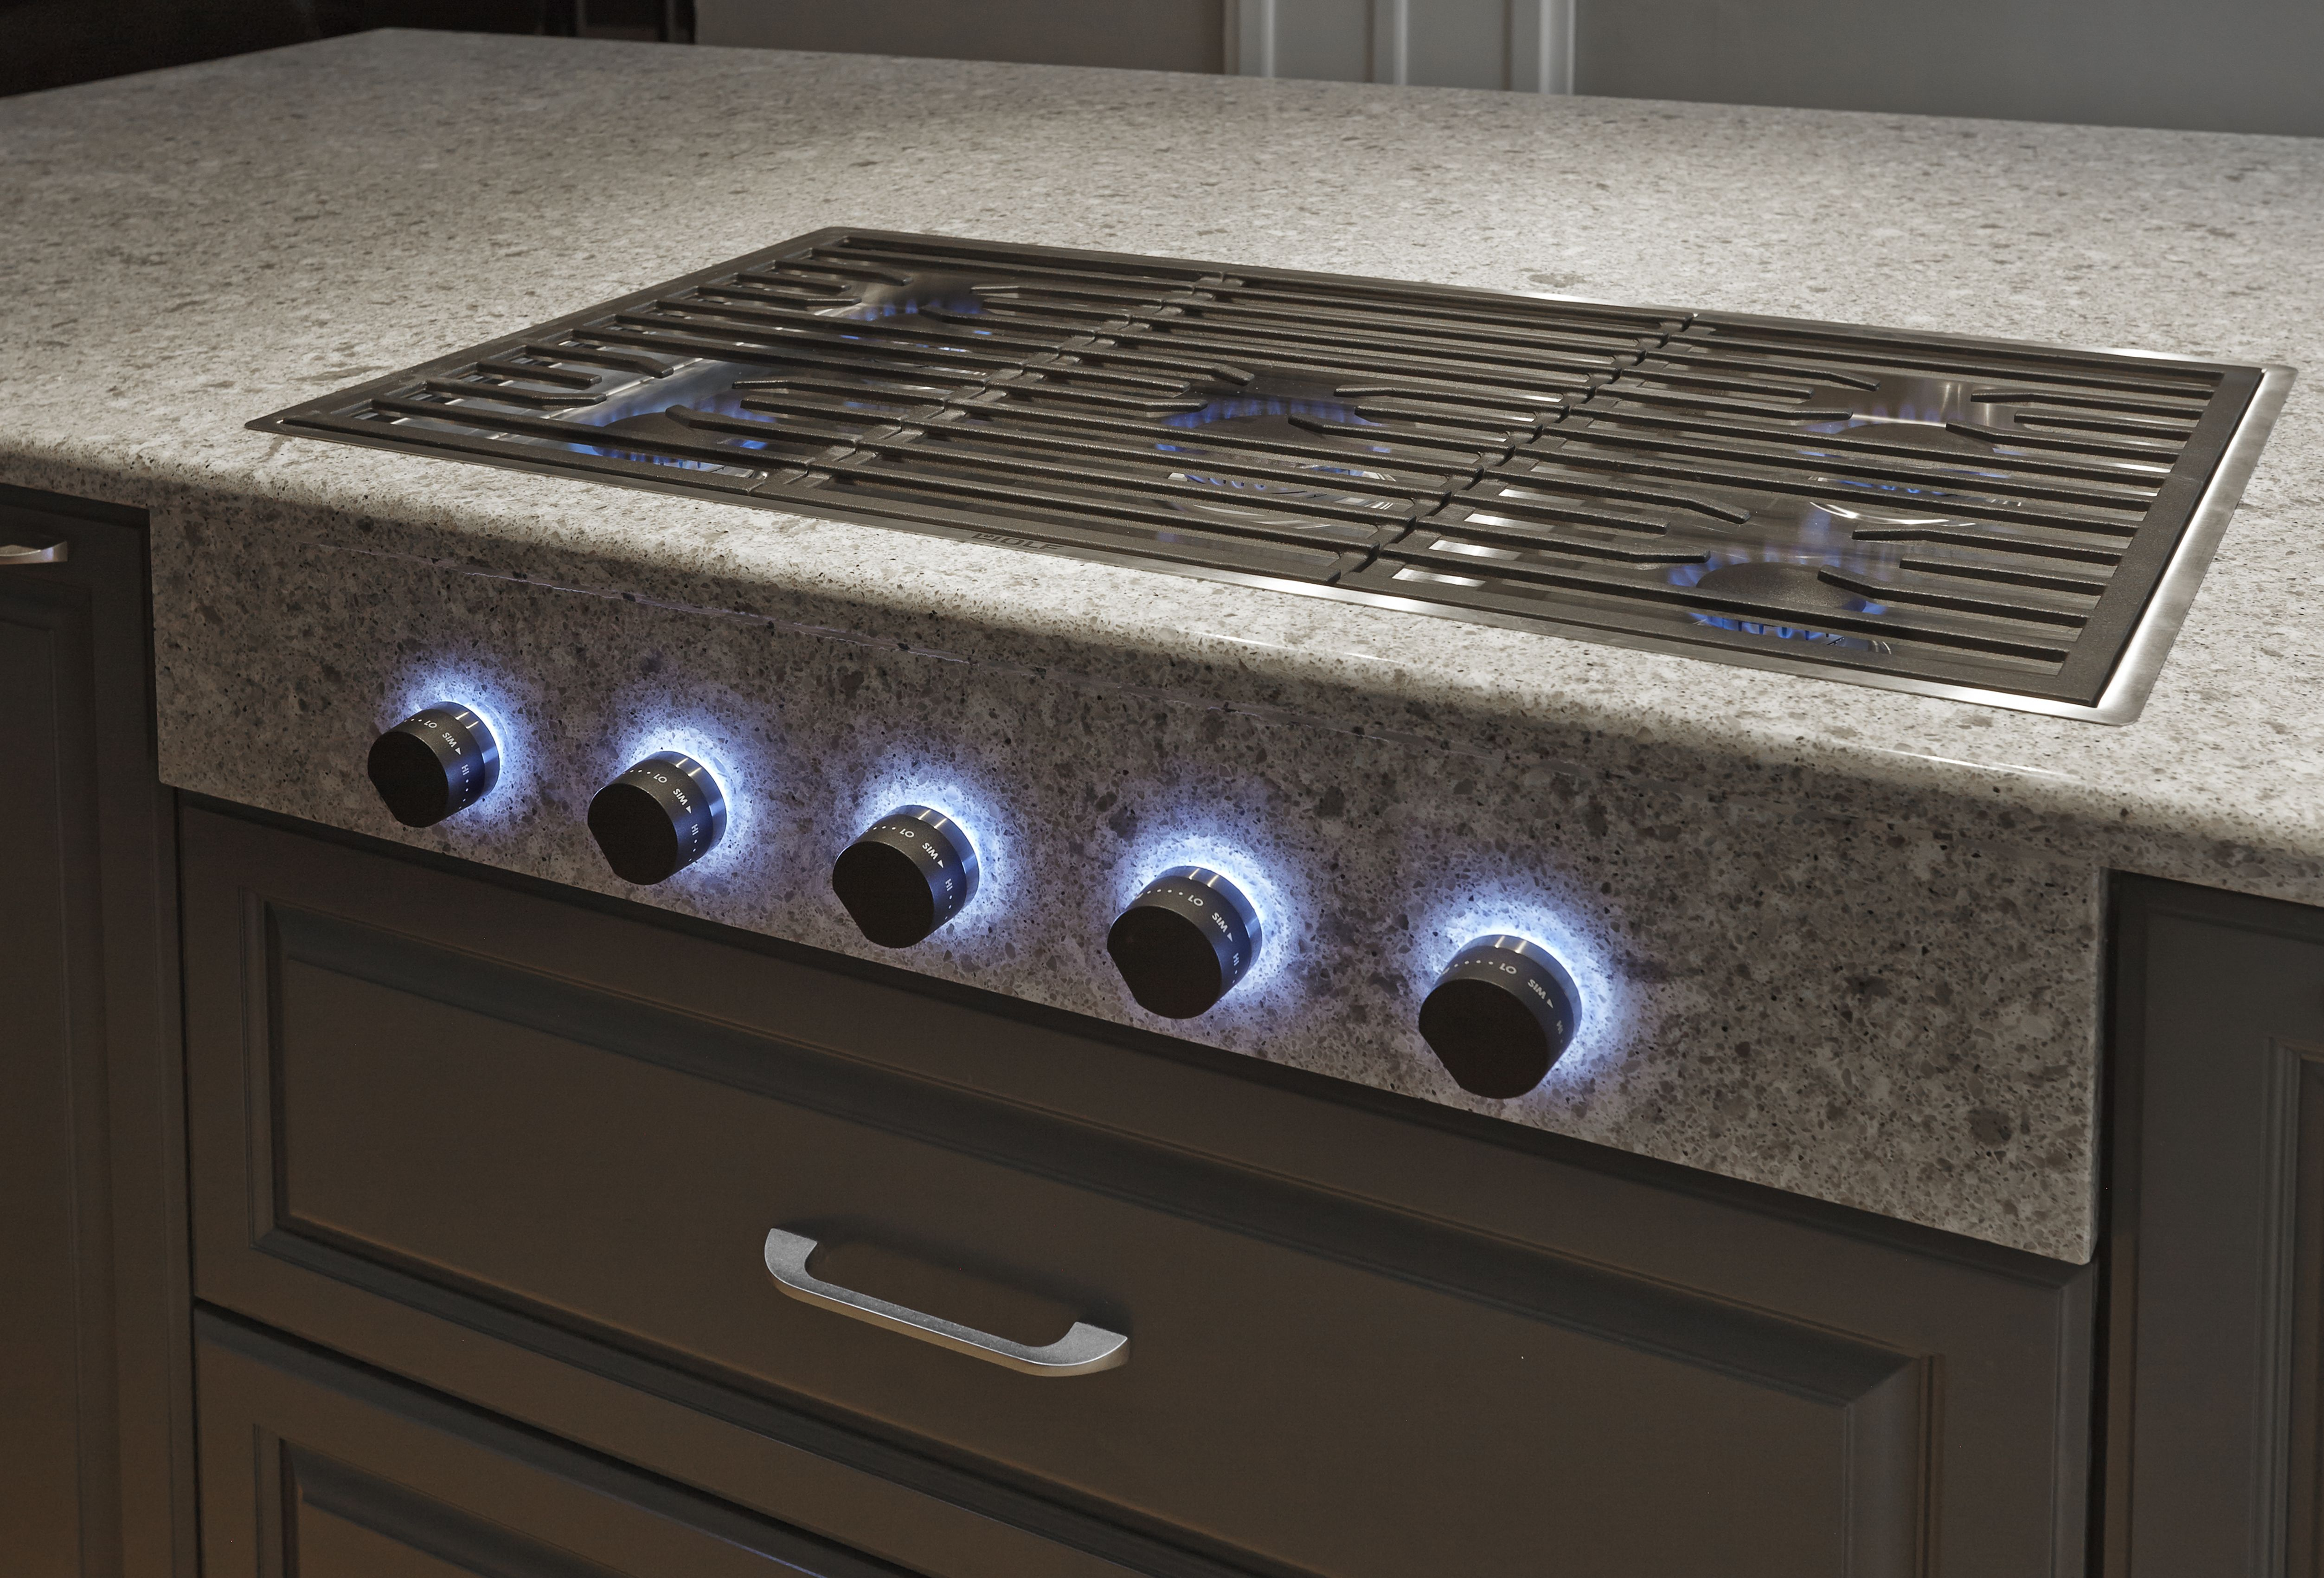 Check Out This Brand New Gas Cooktop From Subzero Wolf Liances One Of The Many Kitchen Design Innovations We Offer Get Cooking